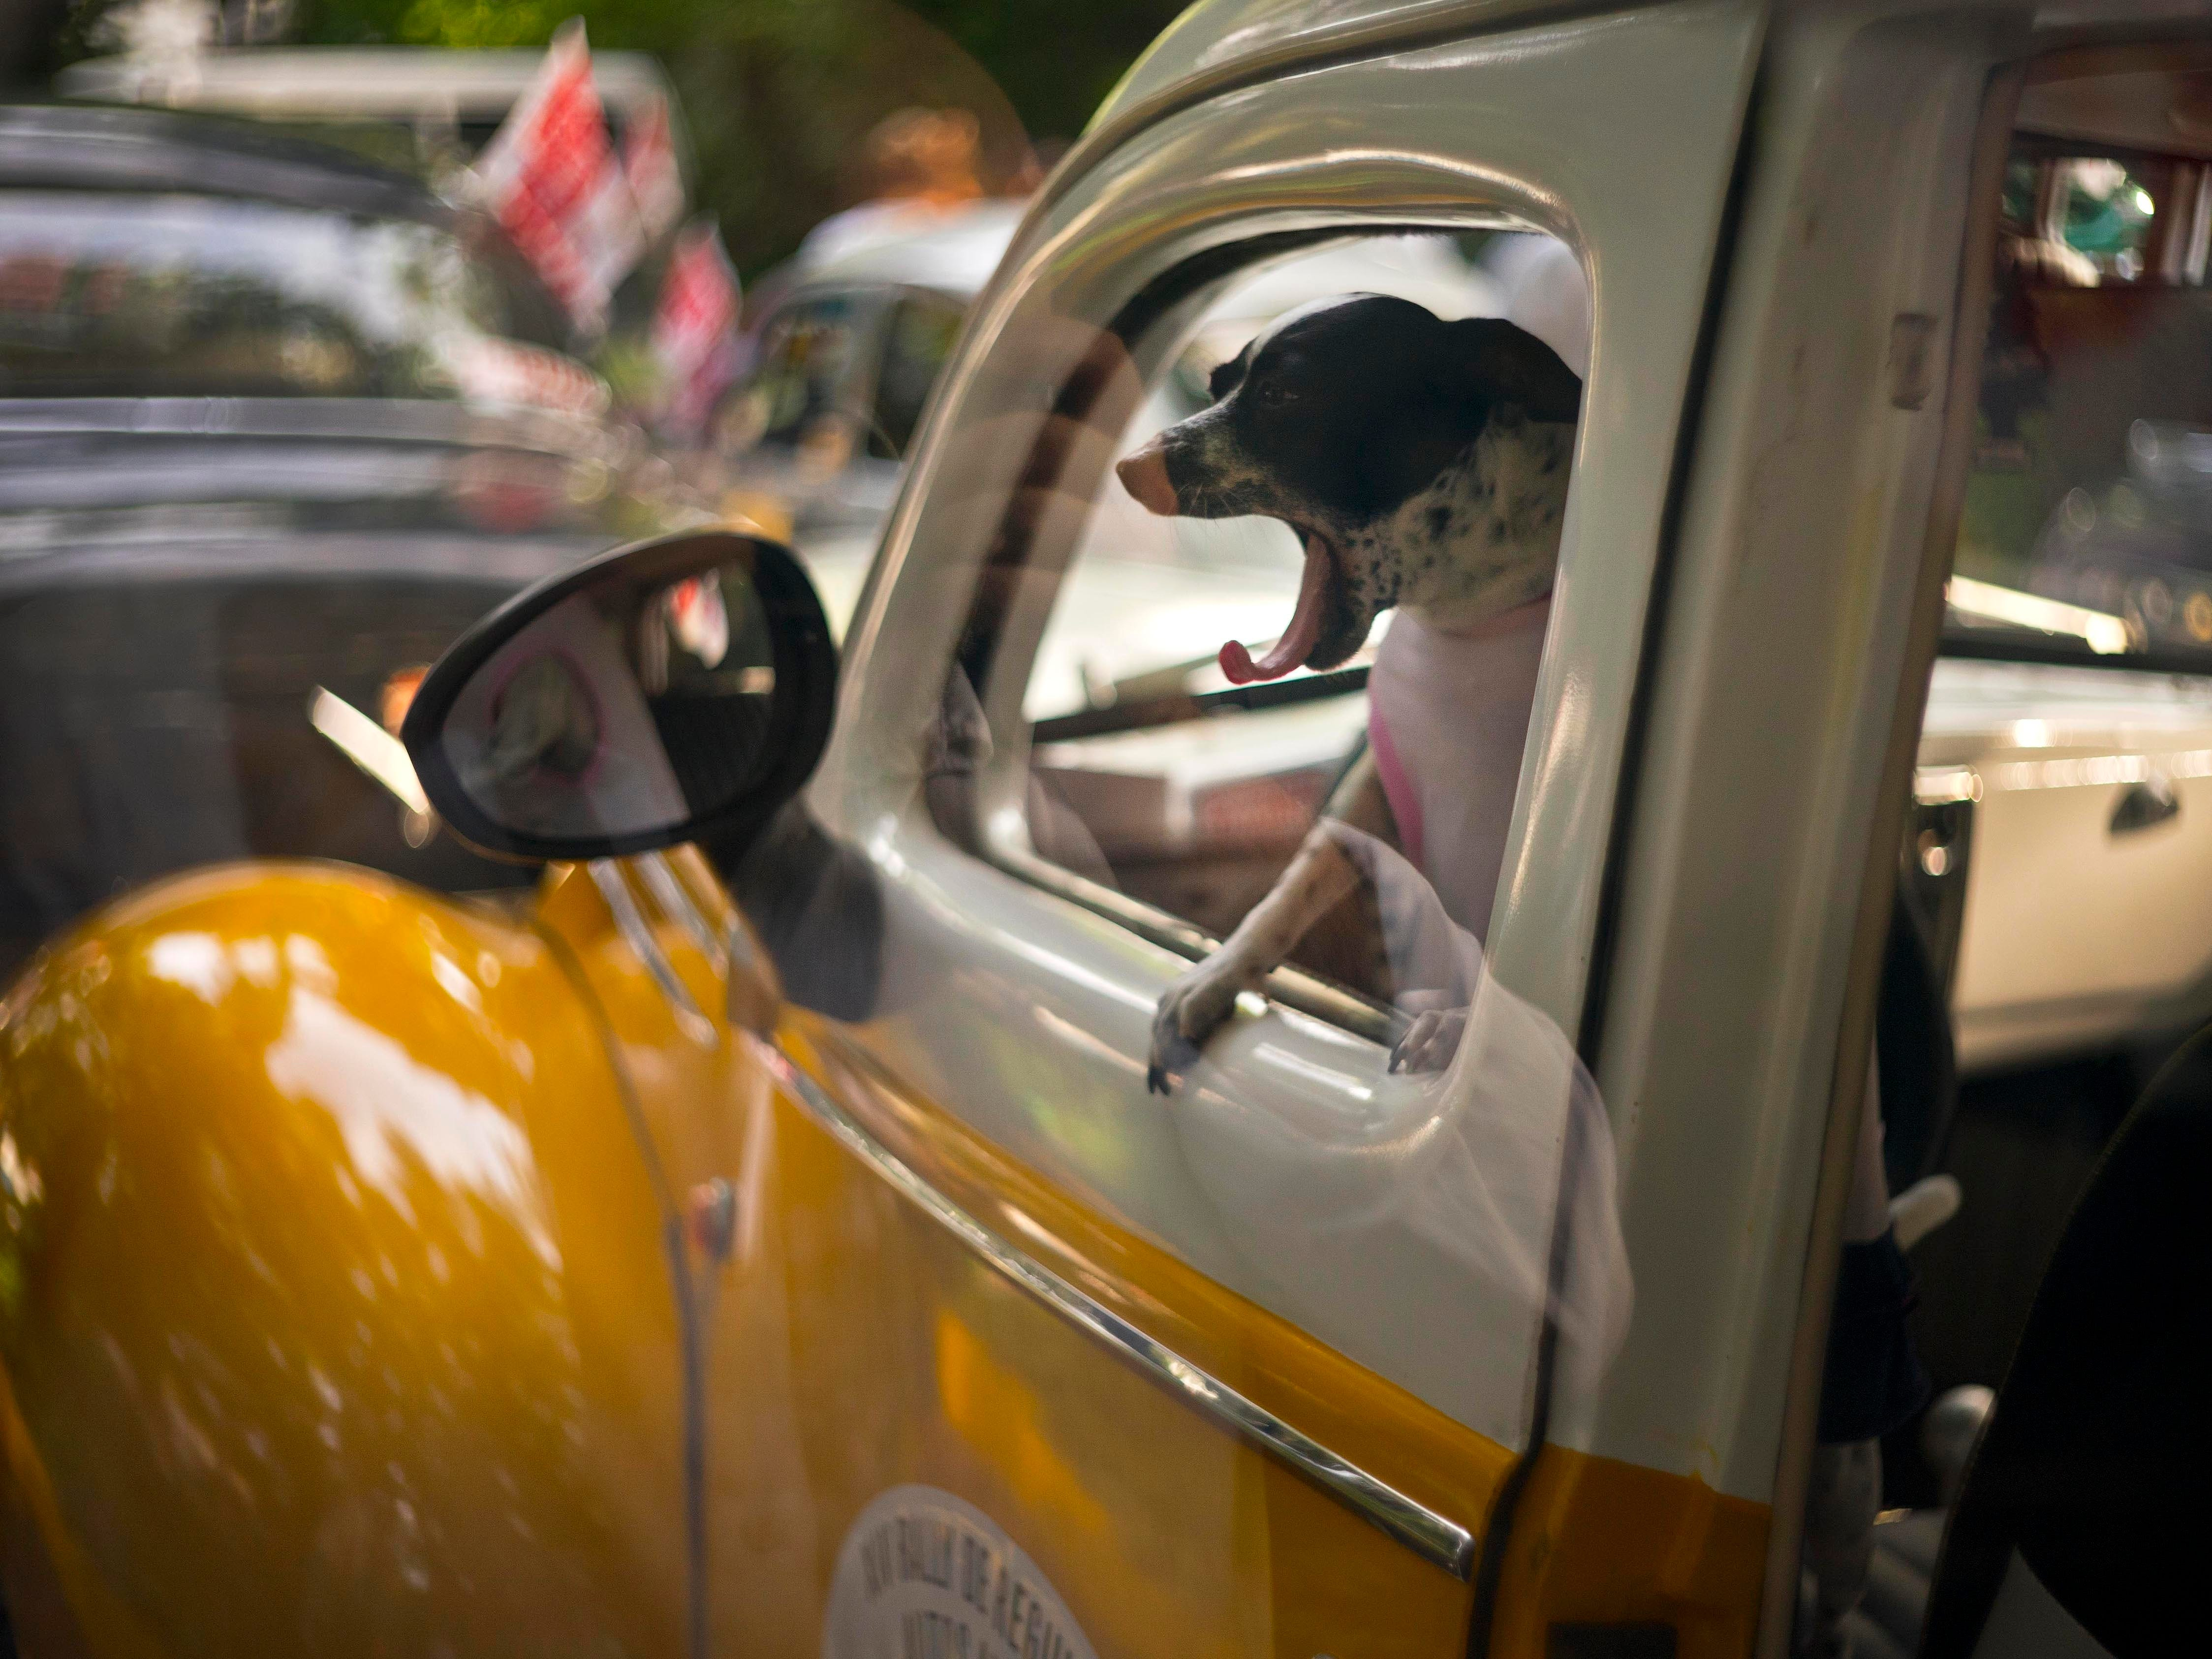 A dog yawns in the cab of a classic 1938 Ford, currently being used as a taxi, as it sits parked before the XIV rally of antique cars in Havana, Cuba, Sunday, Nov. 4, 2018.